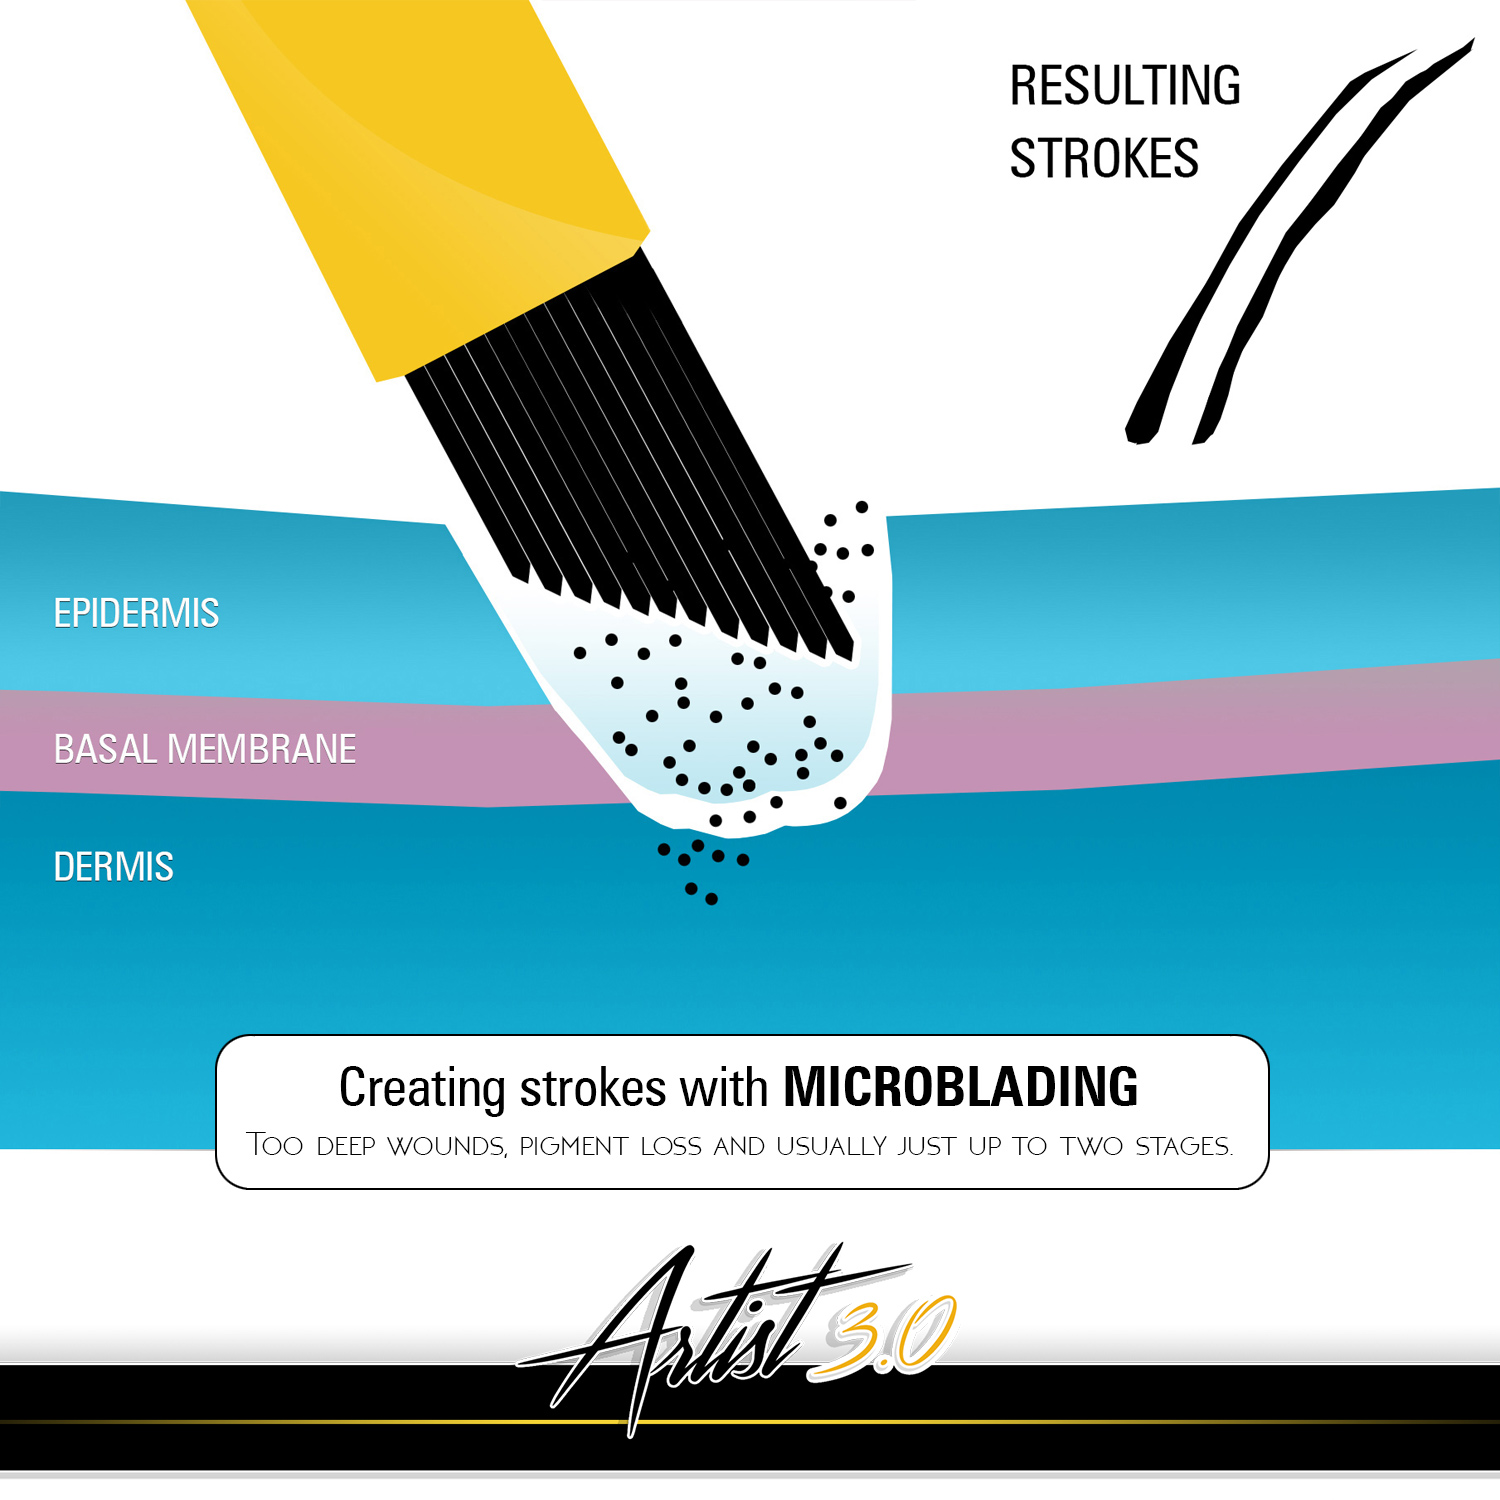 With ordinary microblading very often cuts are made too deep. This results in thicker lines, pigment loss and uneven results.It is harder to control the depth of the blade and most of all most often also the number on needles is smaller. That all results in reduced durability of the end-result. There is a pigment loss in all stages of making strokes as well as the width of the stroke gets larger.